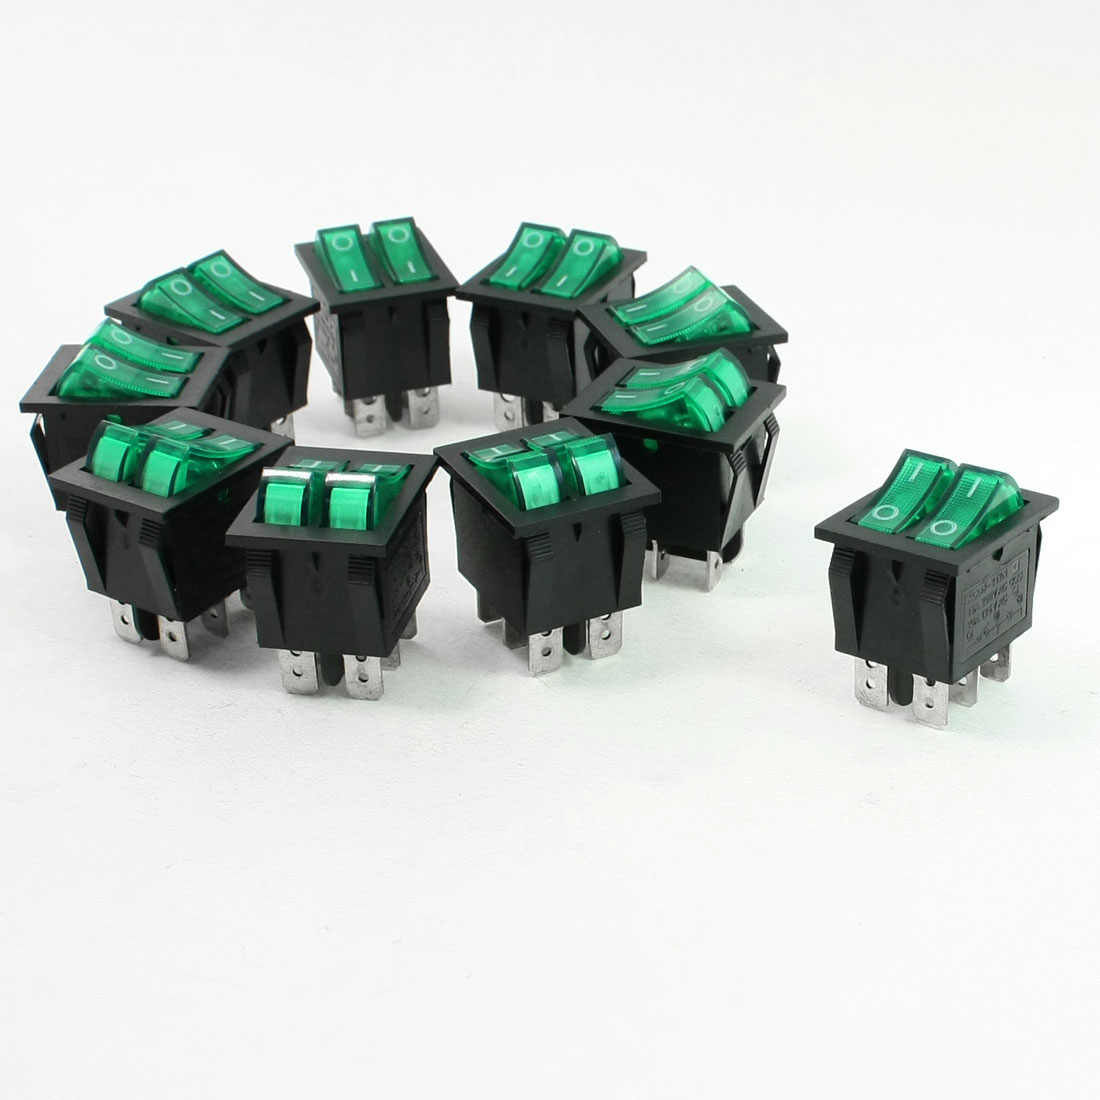 Green Illuminated Light On/Off 2 Boat Rocker Switch 6A/250V 20A/125V AC 10 Pcs